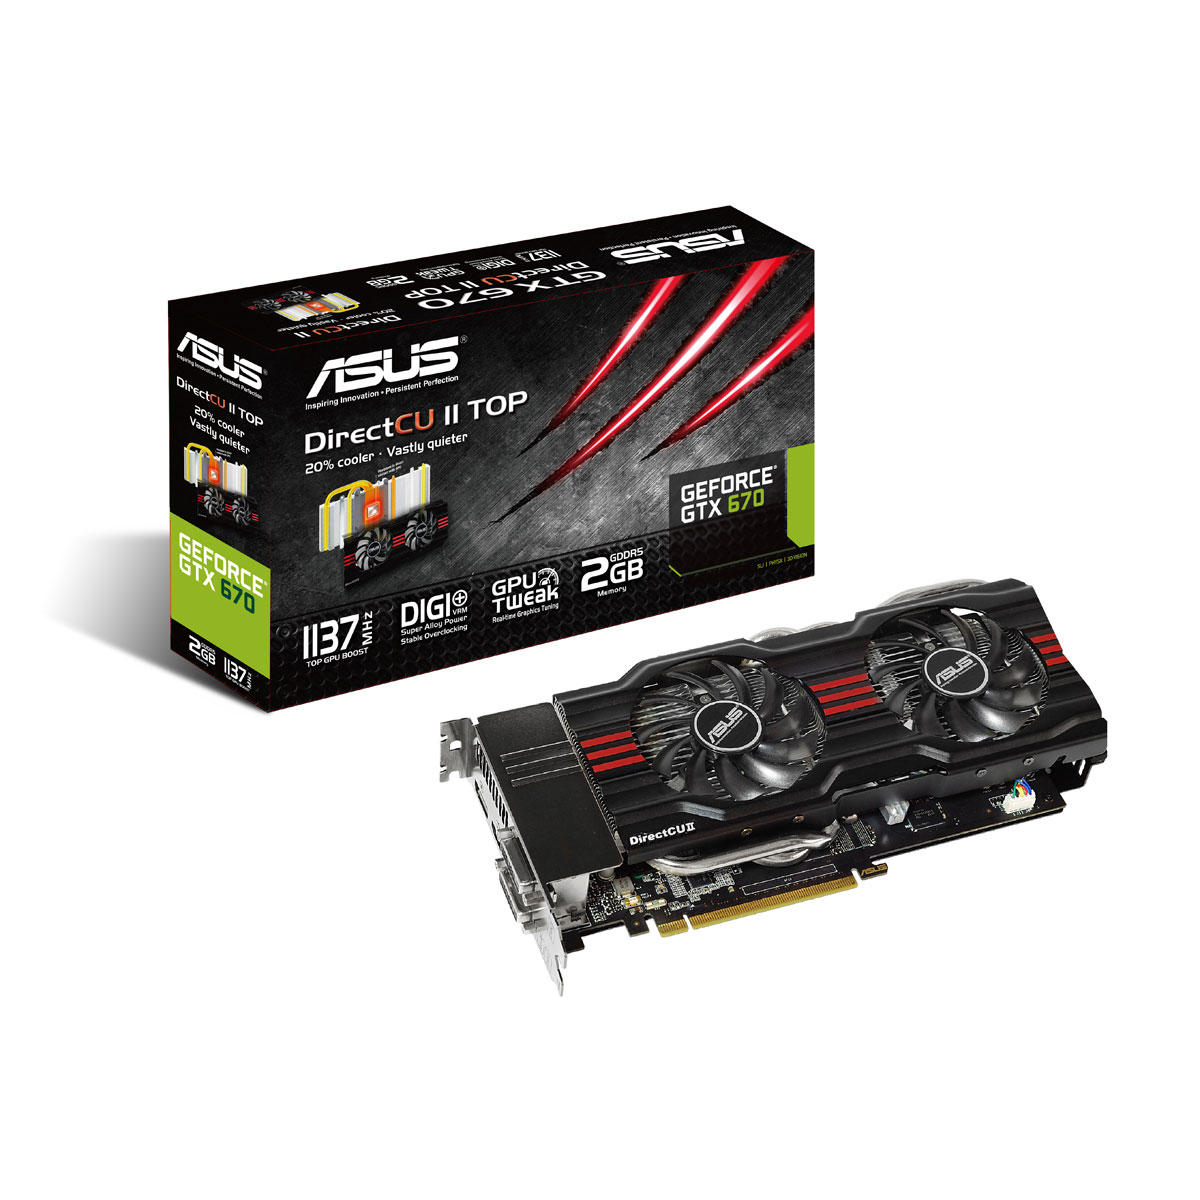 Carte graphique Asus GTX670-DC2T-2GD5 2 GB 2048 Mo Dual DVI/HDMI/DisplayPort - PCI Express (NVIDIA GeForce avec CUDA GTX 670)